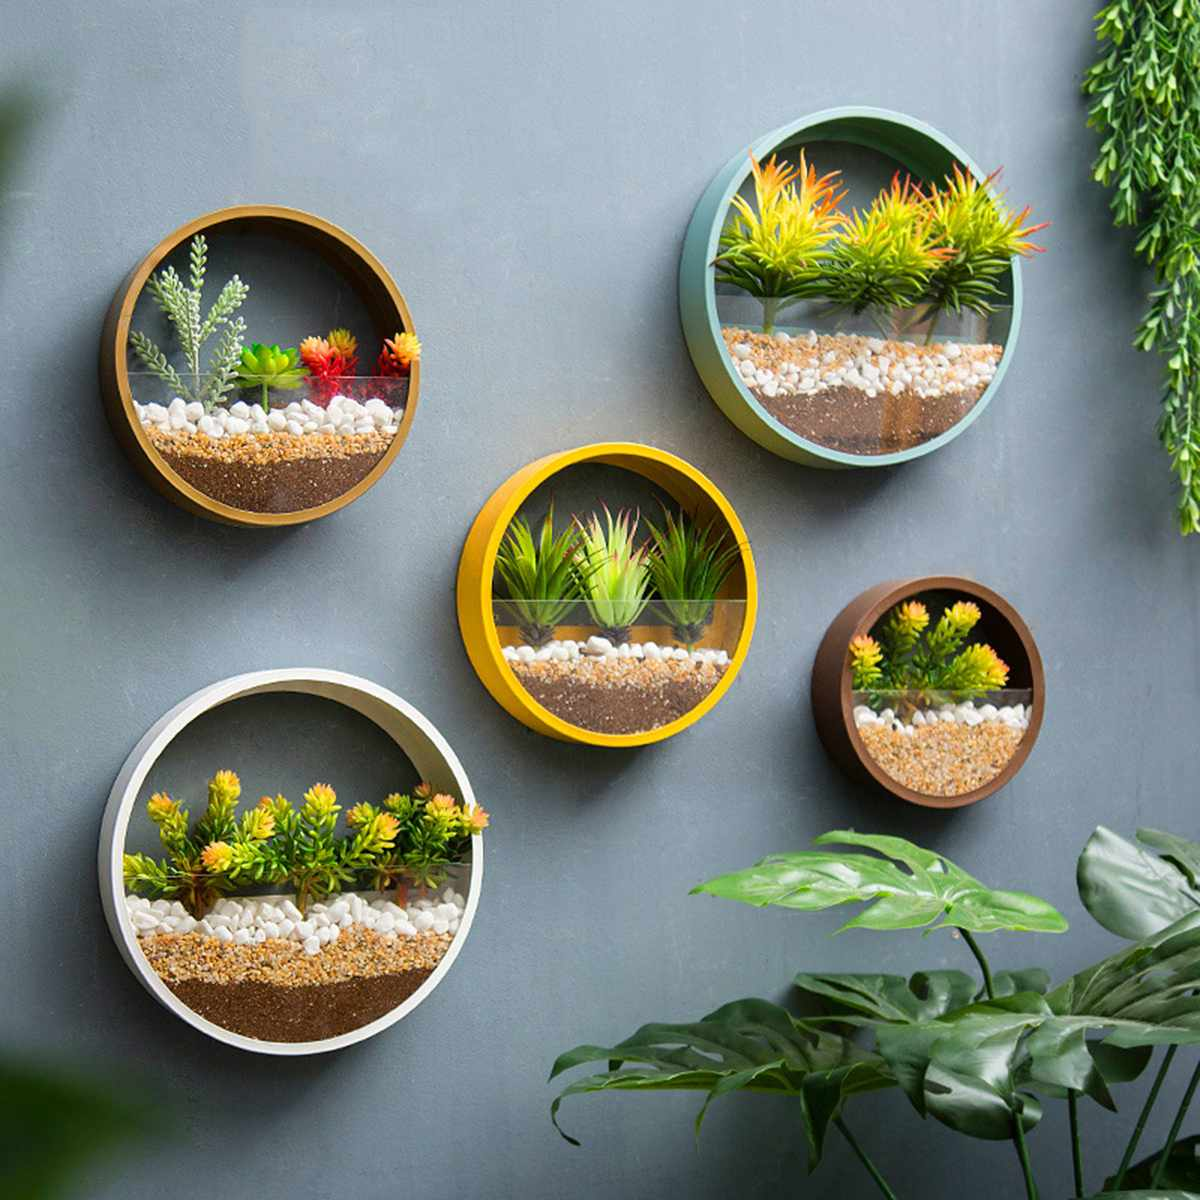 4 Colors Wall Vase Home Living Room Restaurant Hanging Flower Pot Wall Decor Succulent Plant Planters Round Iron Art Glass Vases